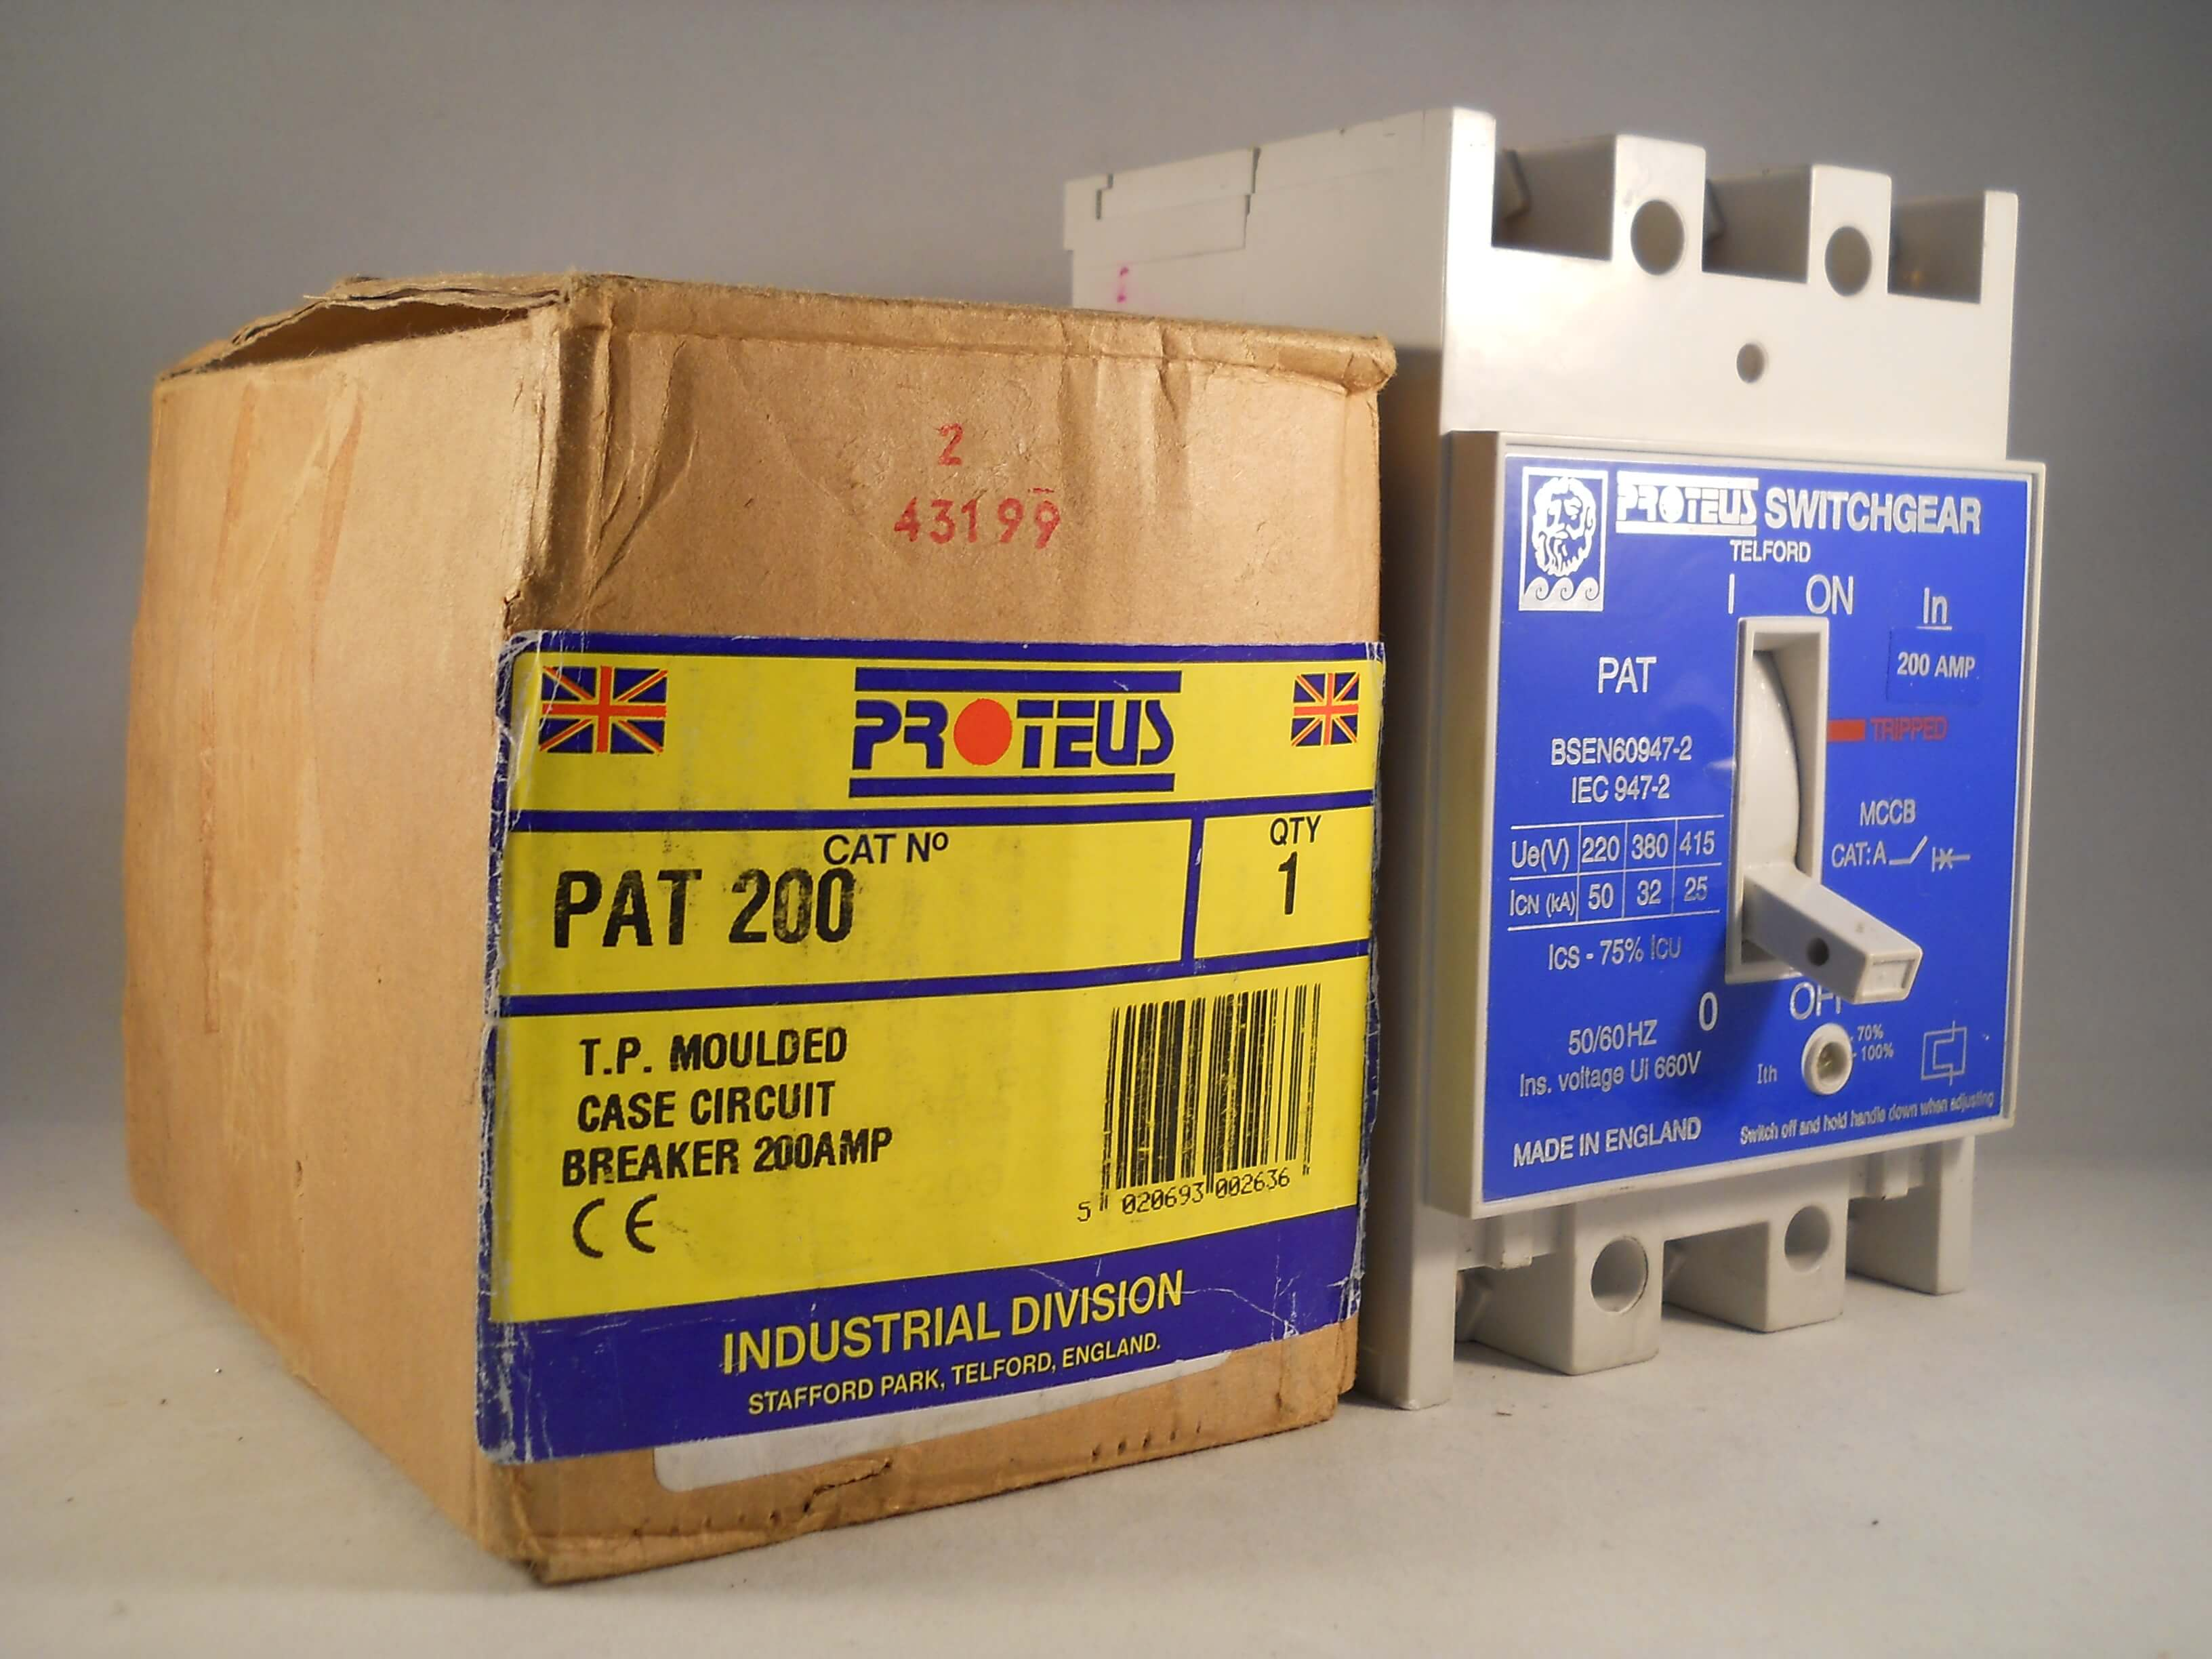 PAT200BOXED 2 proteus mccb 200 amp triple pole 3 phase 200a circuit breaker proteus electrical fuse box at fashall.co